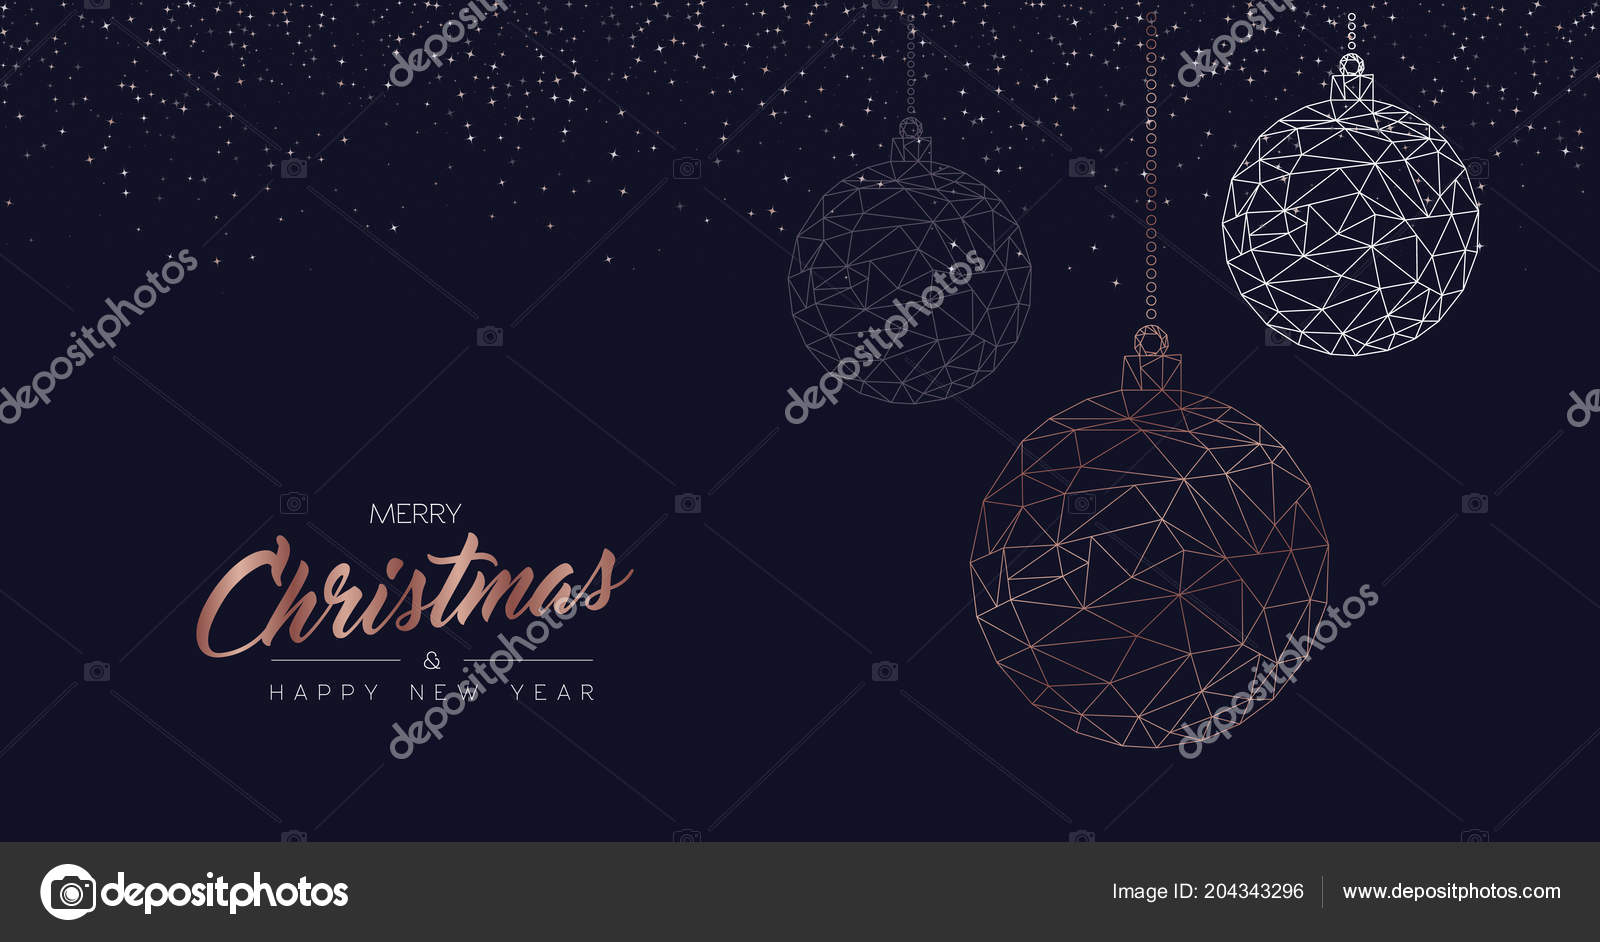 merry christmas happy new year web banner luxury xmas ornament stock vector